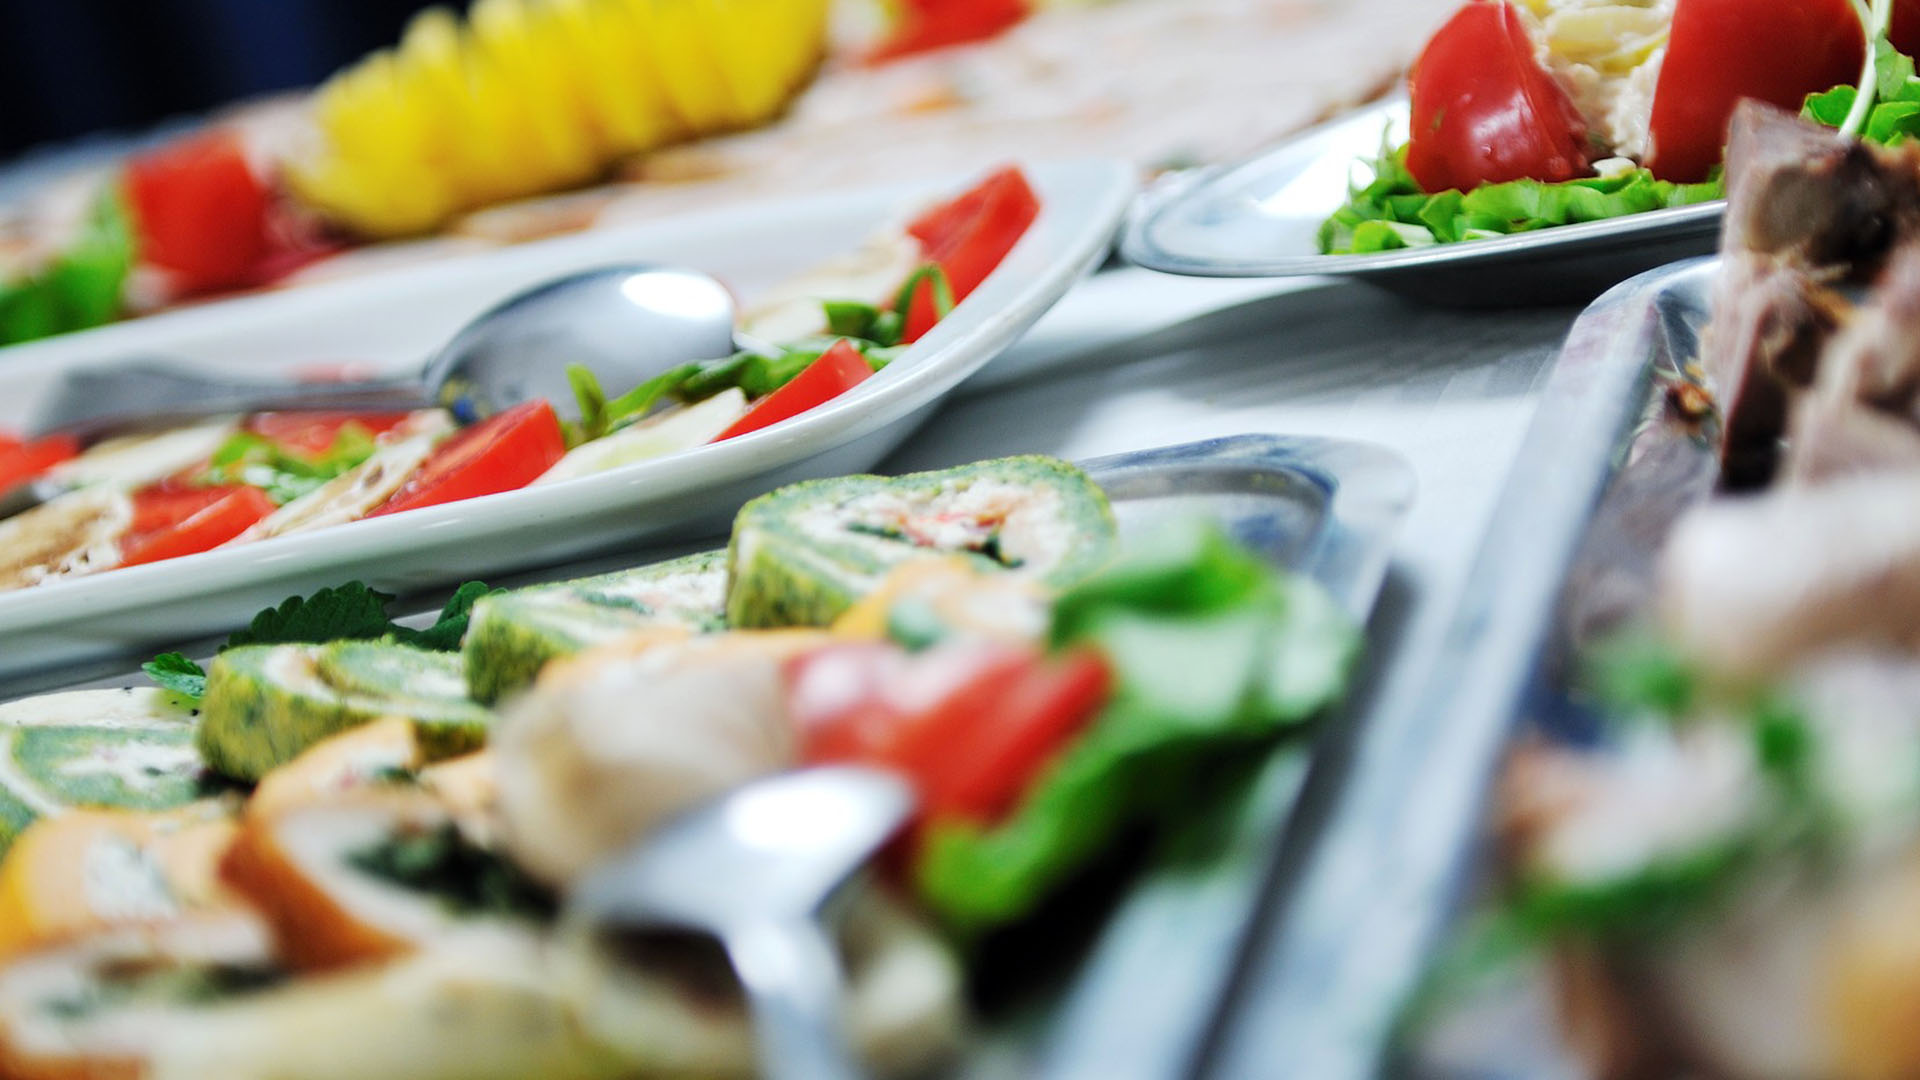 <h2>Catering</h2><p>Υπηρεσία Catering</p><div class='bgslideshowmore'><a href='http://www.katsaros.4ty.gr/more2.php?l=el' >Περισσότερα...</a></div>